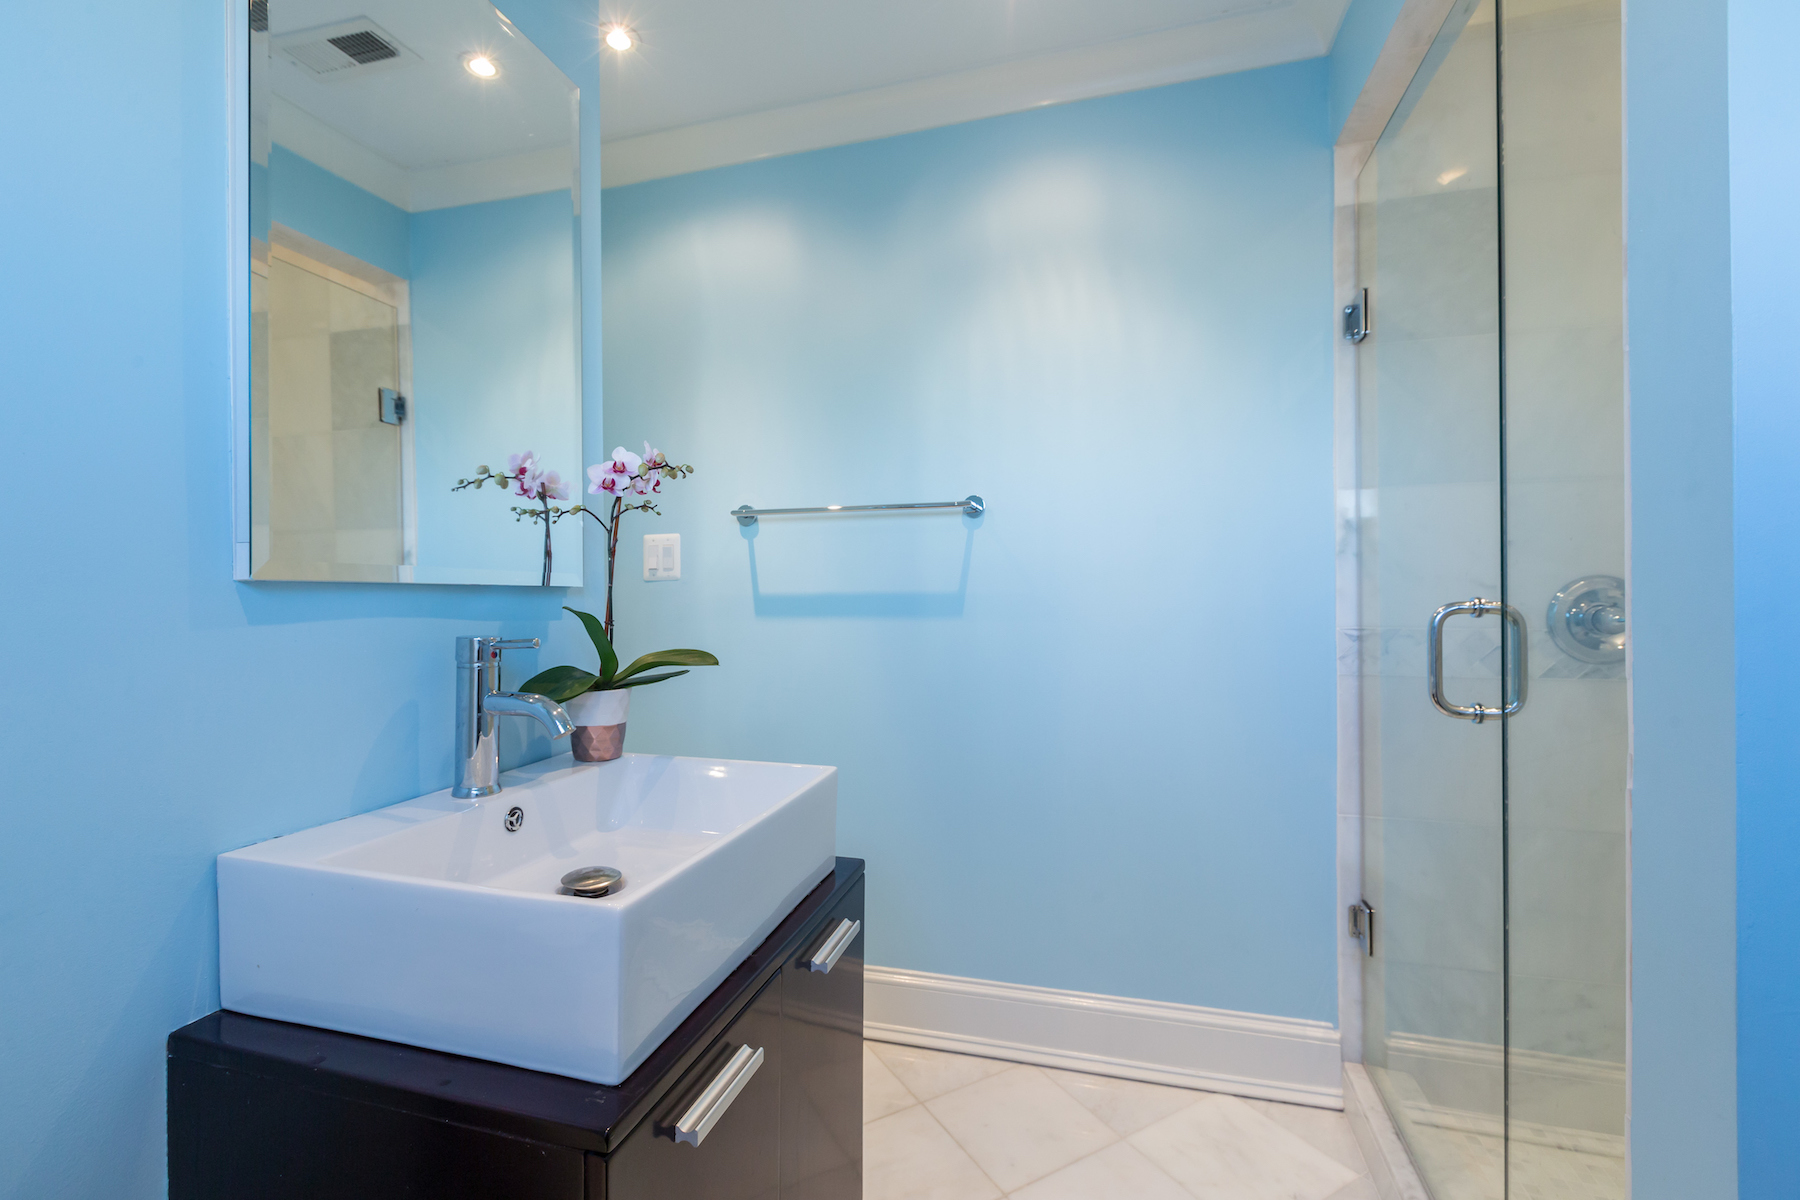 Additional photo for property listing at Georgetown 1403 30th Street Nw Washington, District Of Columbia 20007 United States